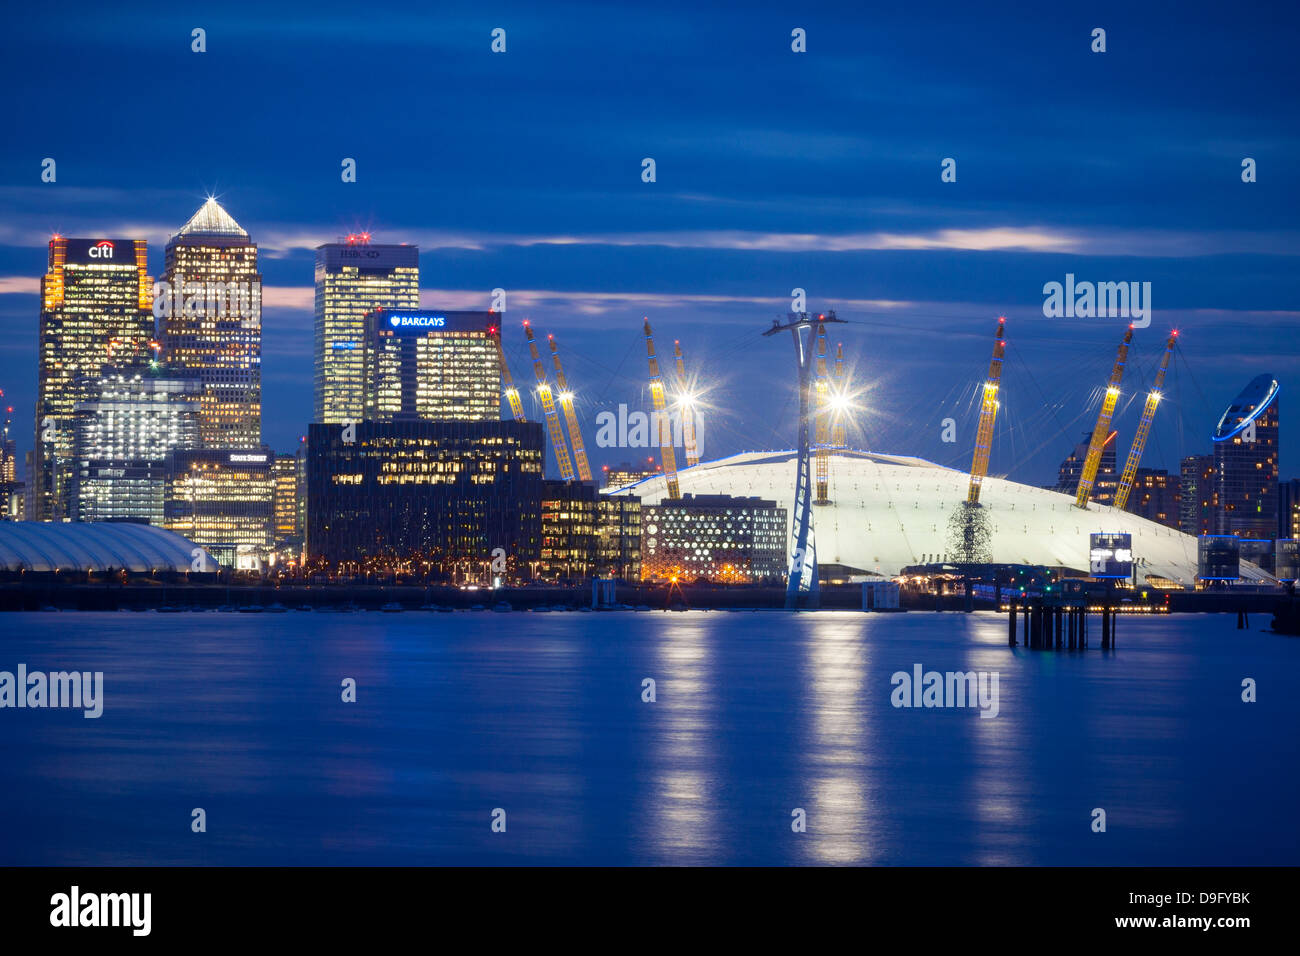 View of London skyline over the River Thames featuring Canary Wharf and O2 Arena, London, England, UK - Stock Image